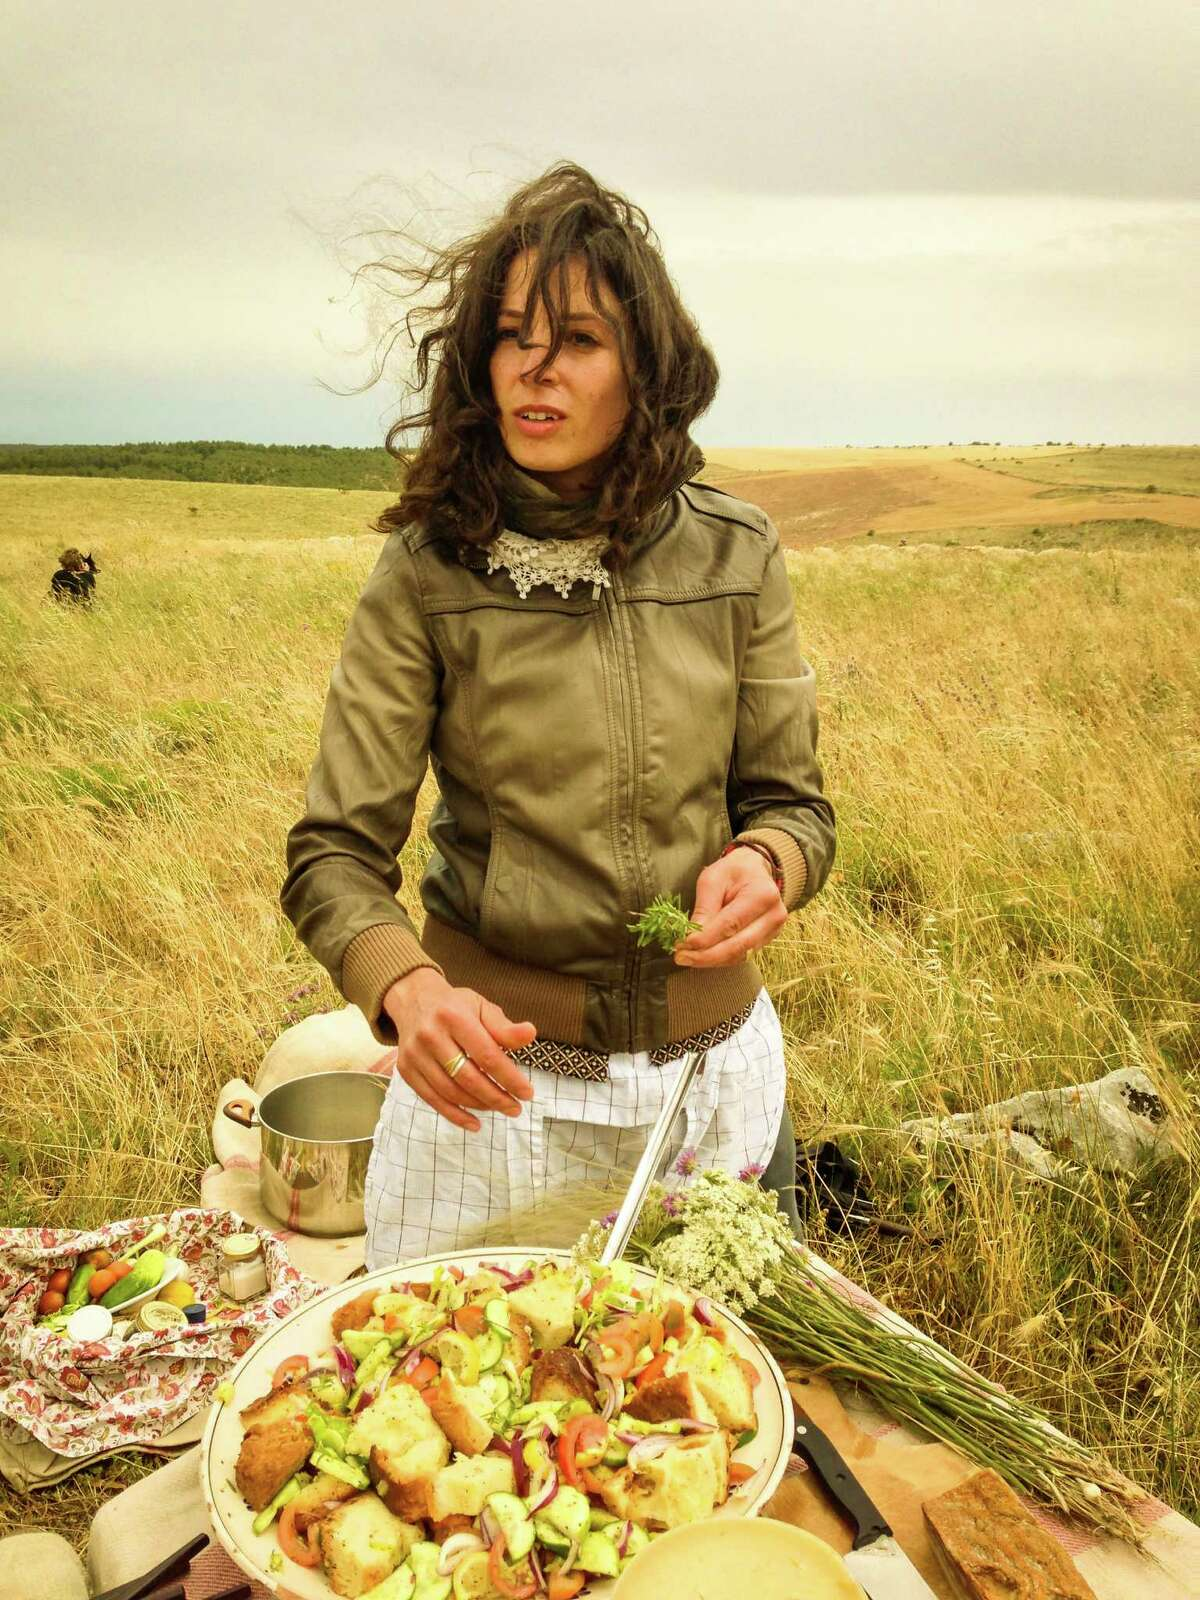 A simple shepherd-style lunch is assembled in the fresh air.